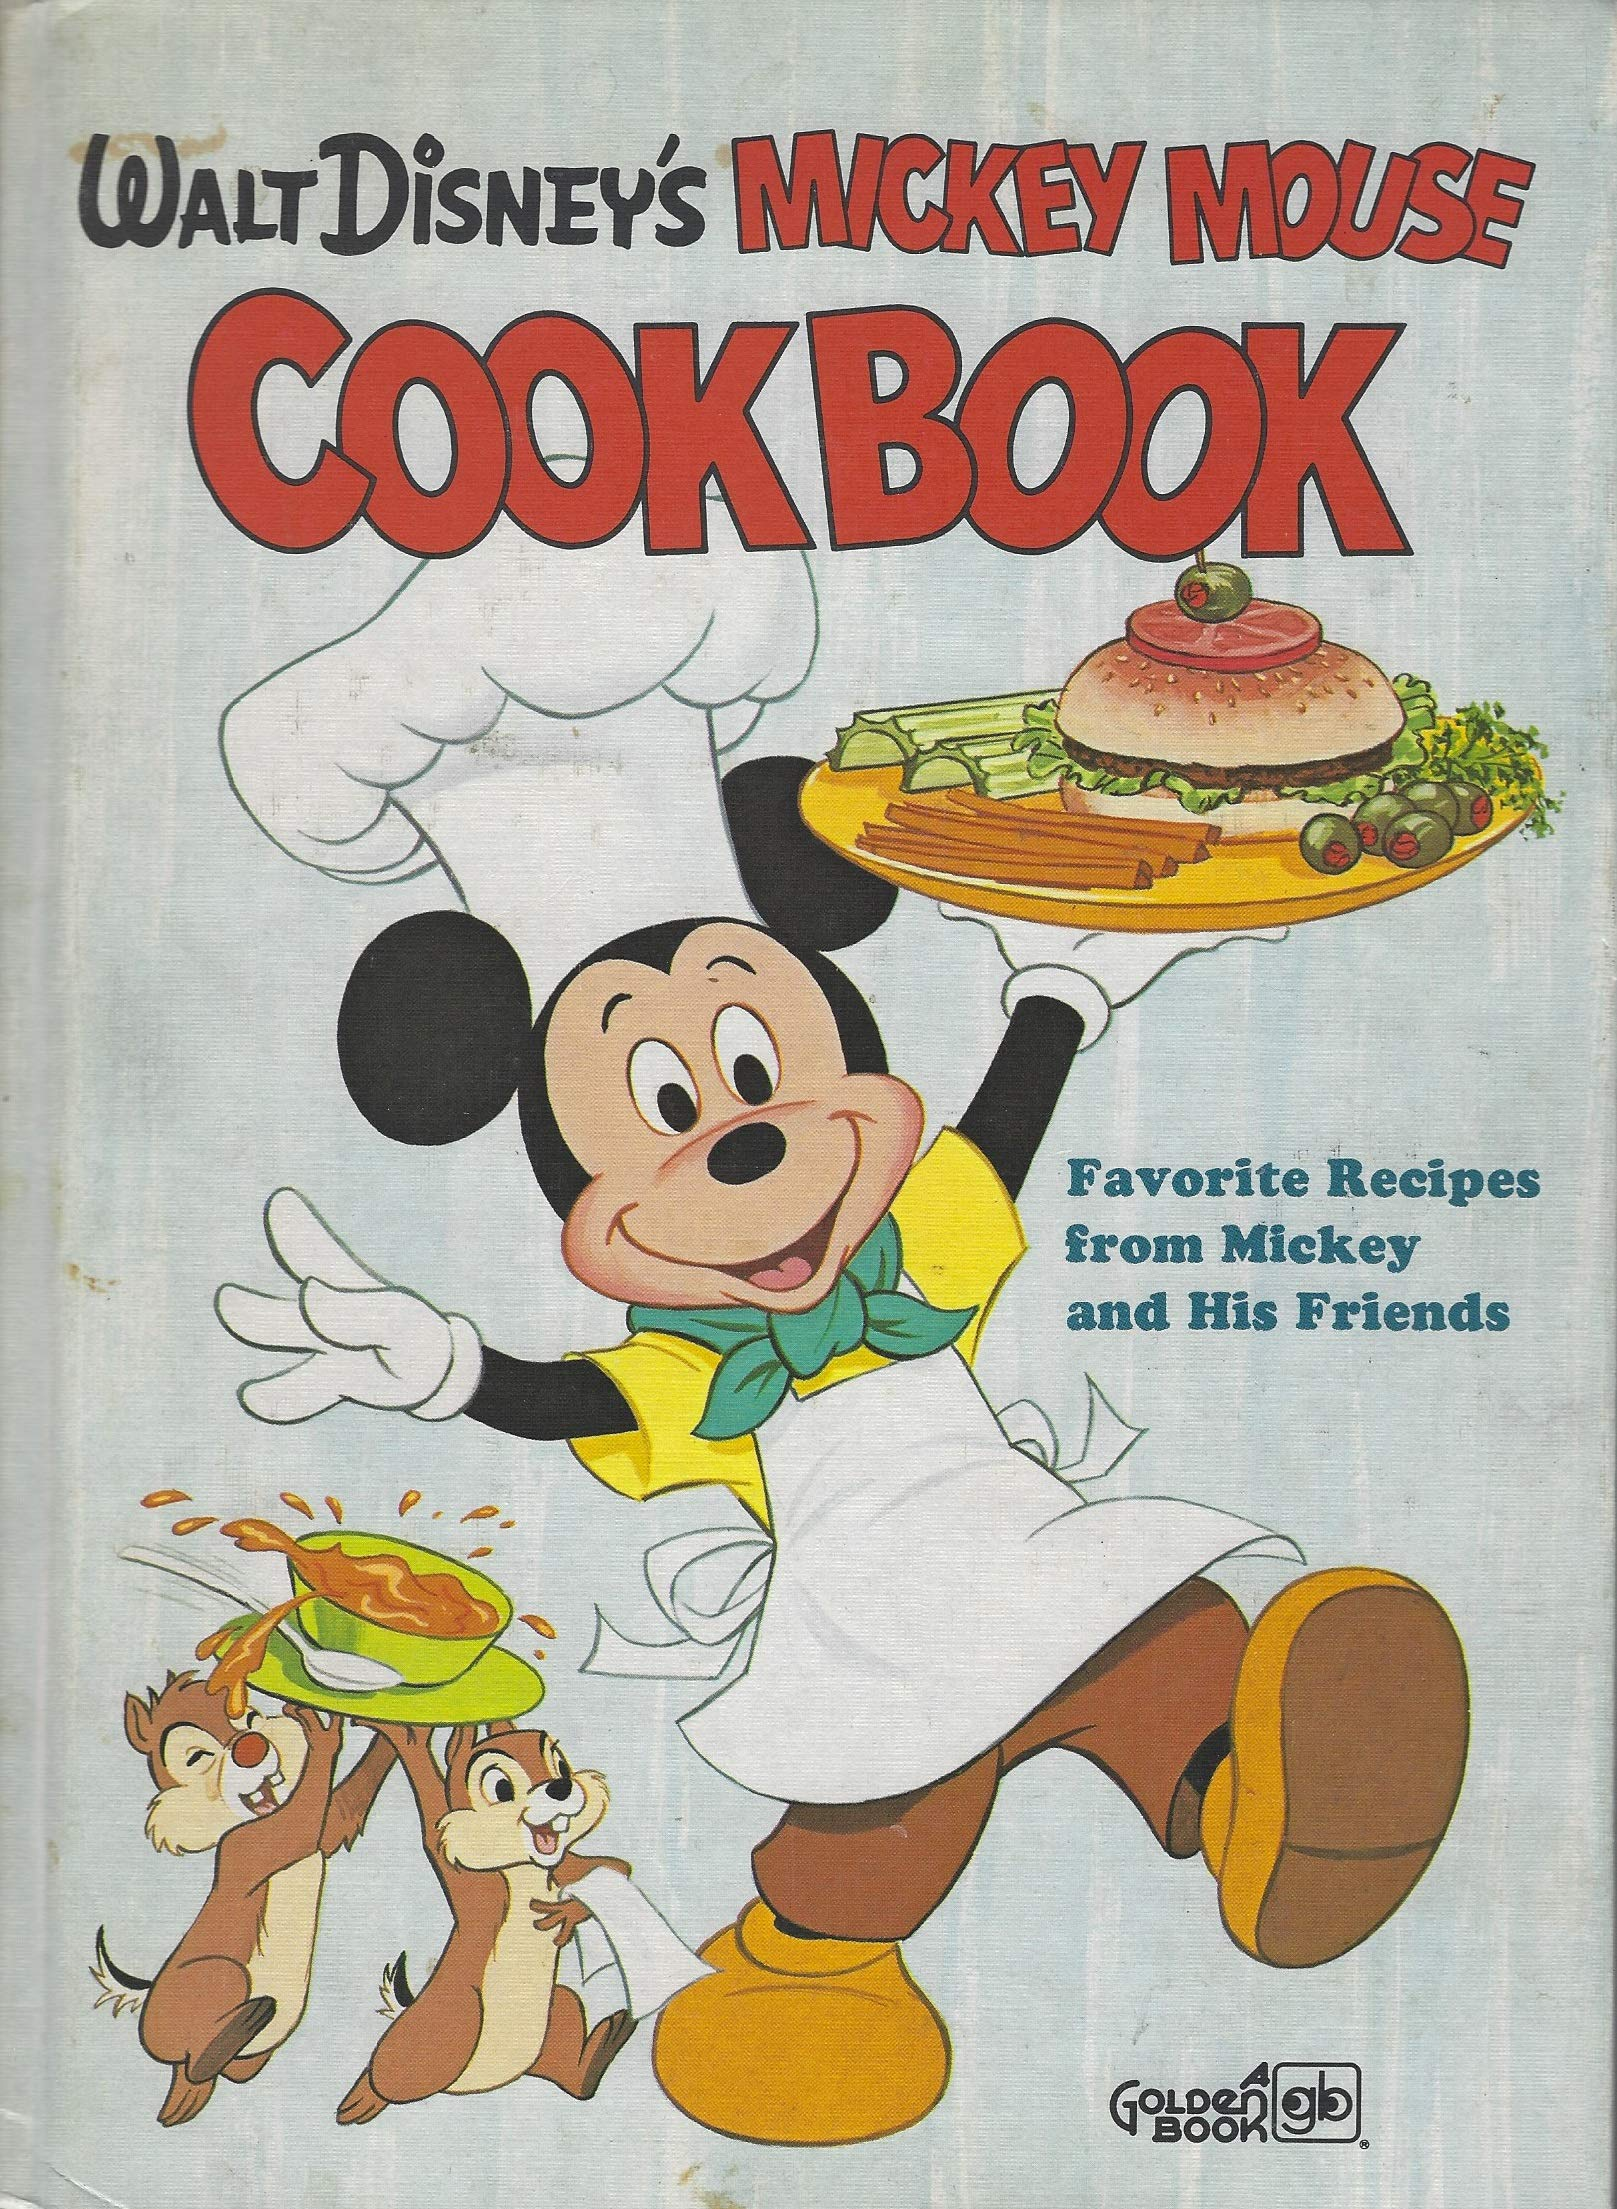 Walt Disney's Mickey Mouse Cookbook: Favorite Recipes from Mickey and His Friends by Golden Books - Western Publishing